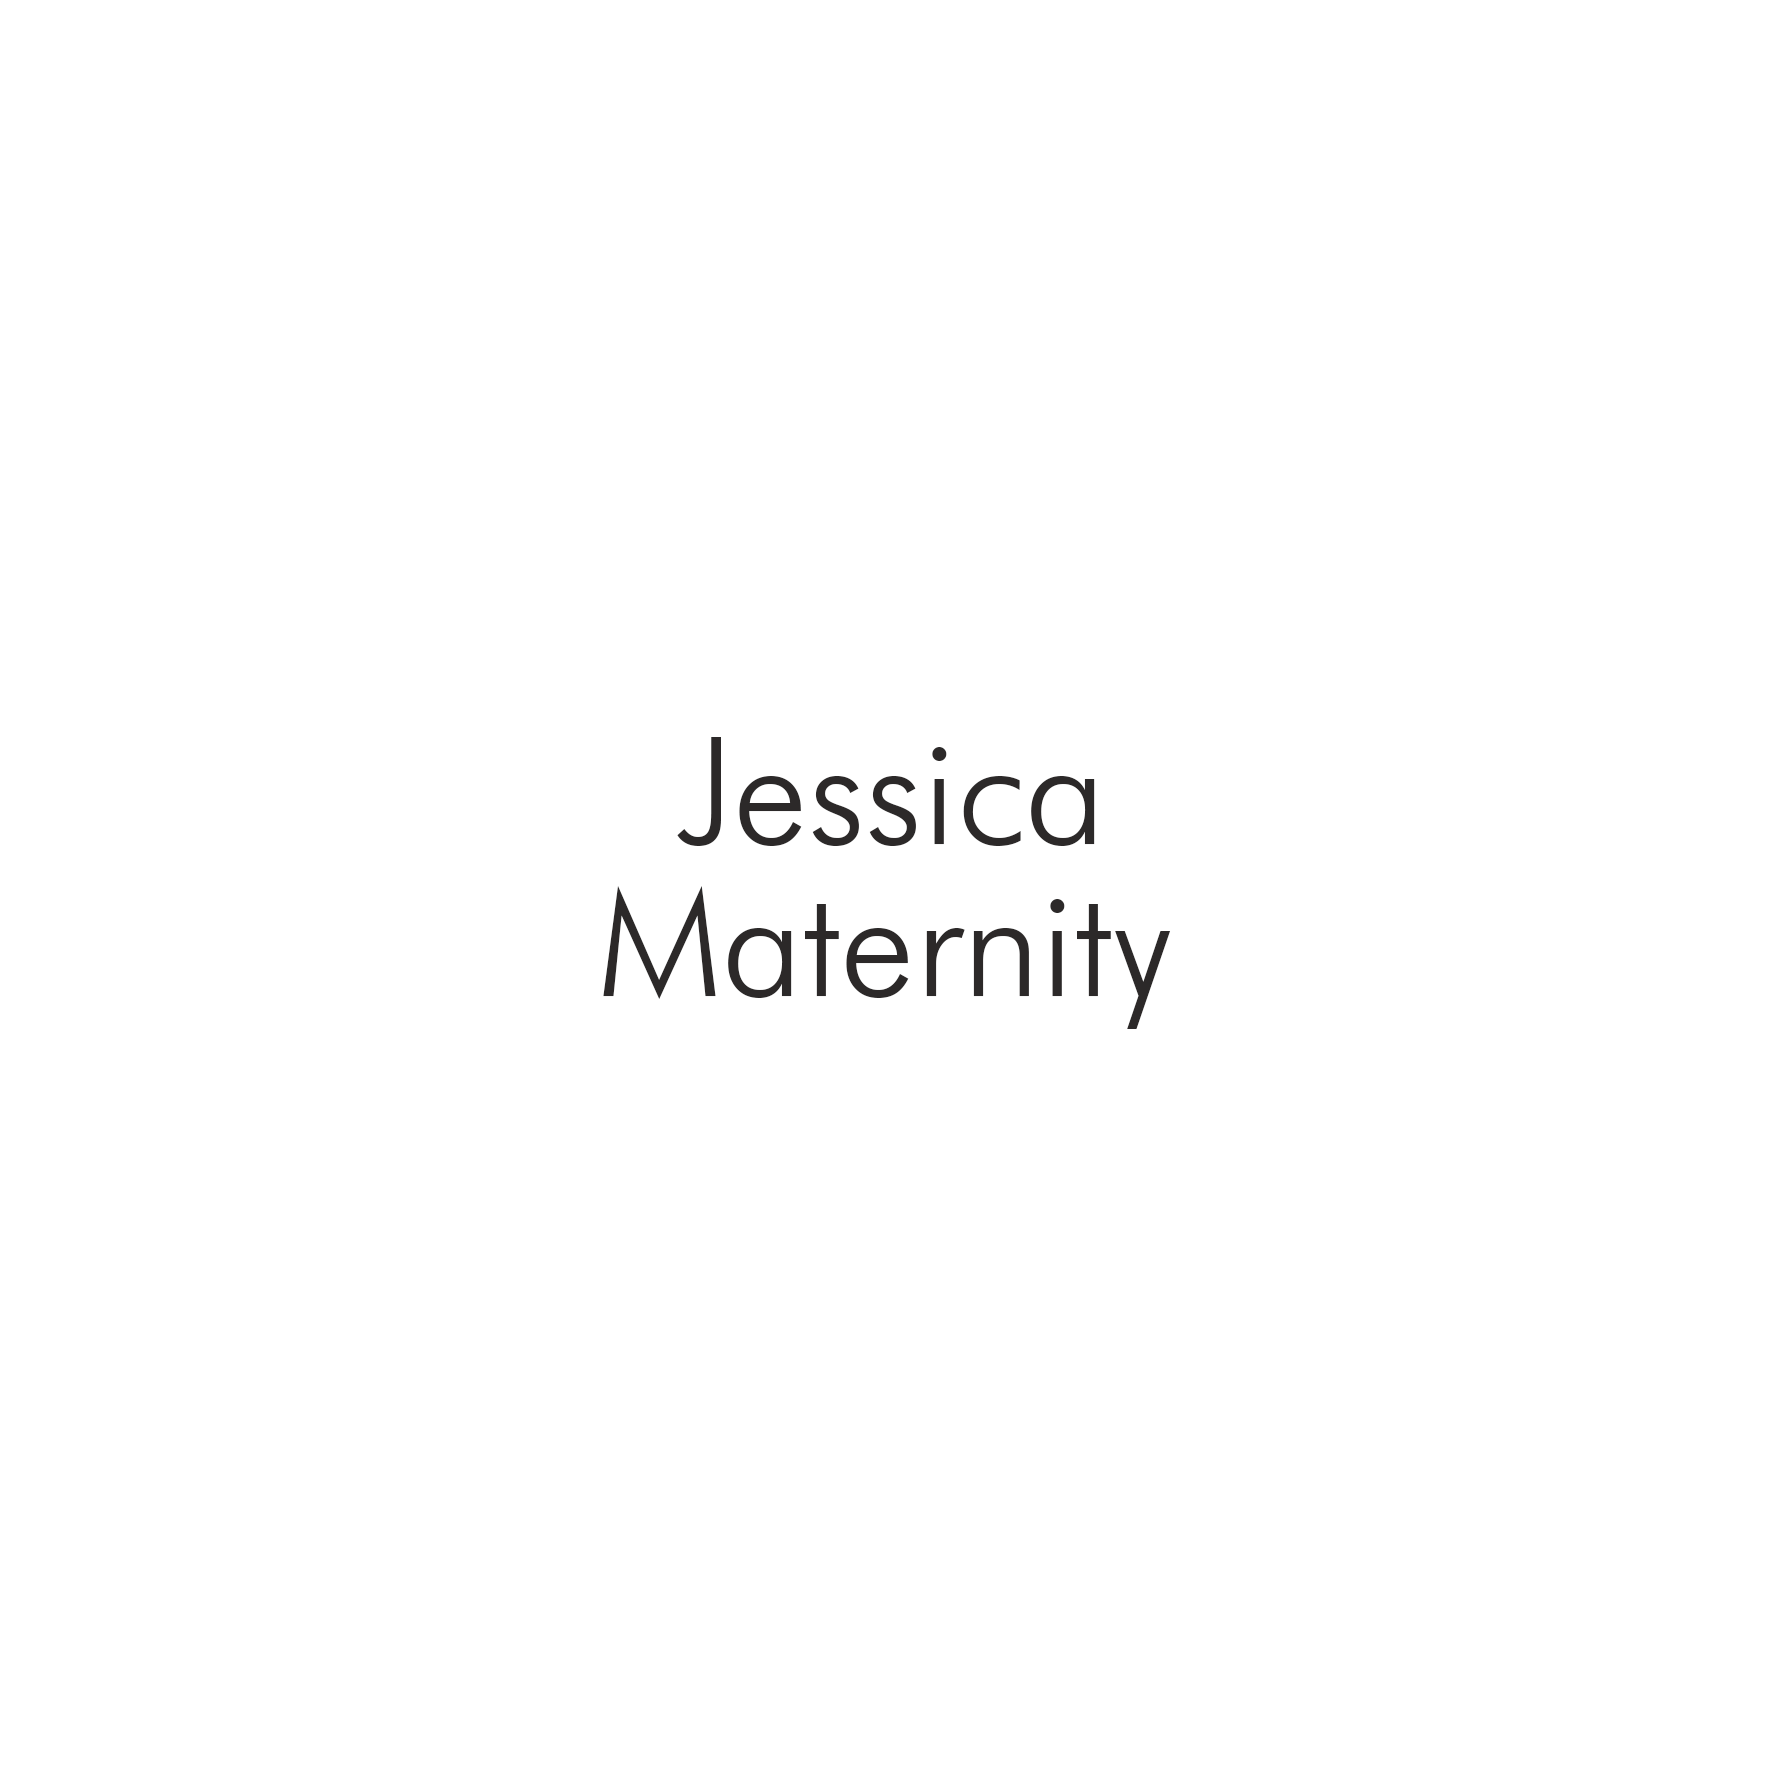 Jessica Maternity.png